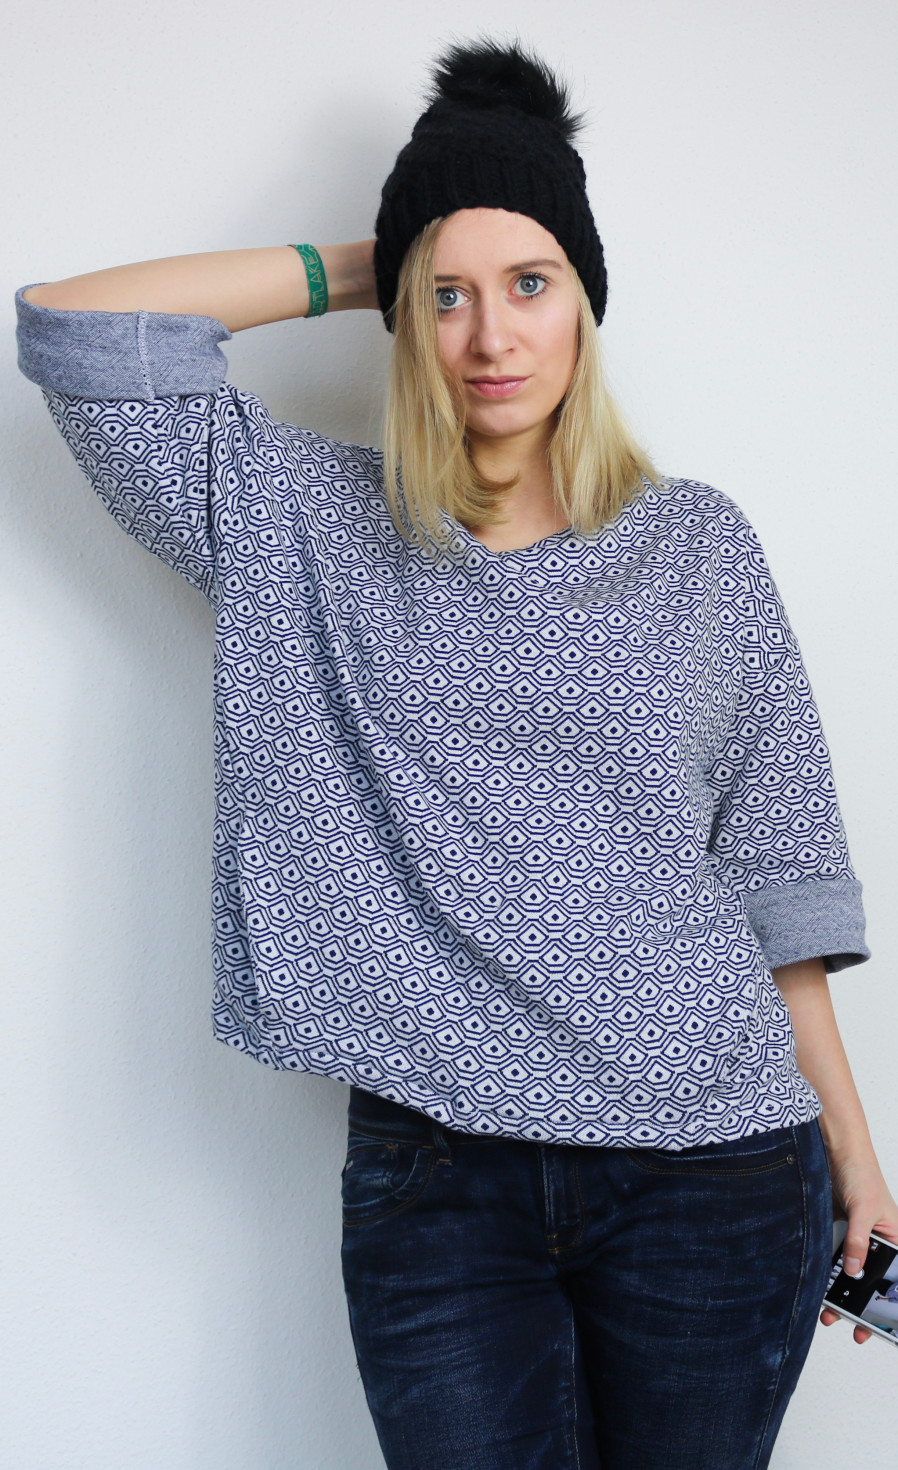 burda style Nutzerkreation Konfettiregen Oversize-Sweater